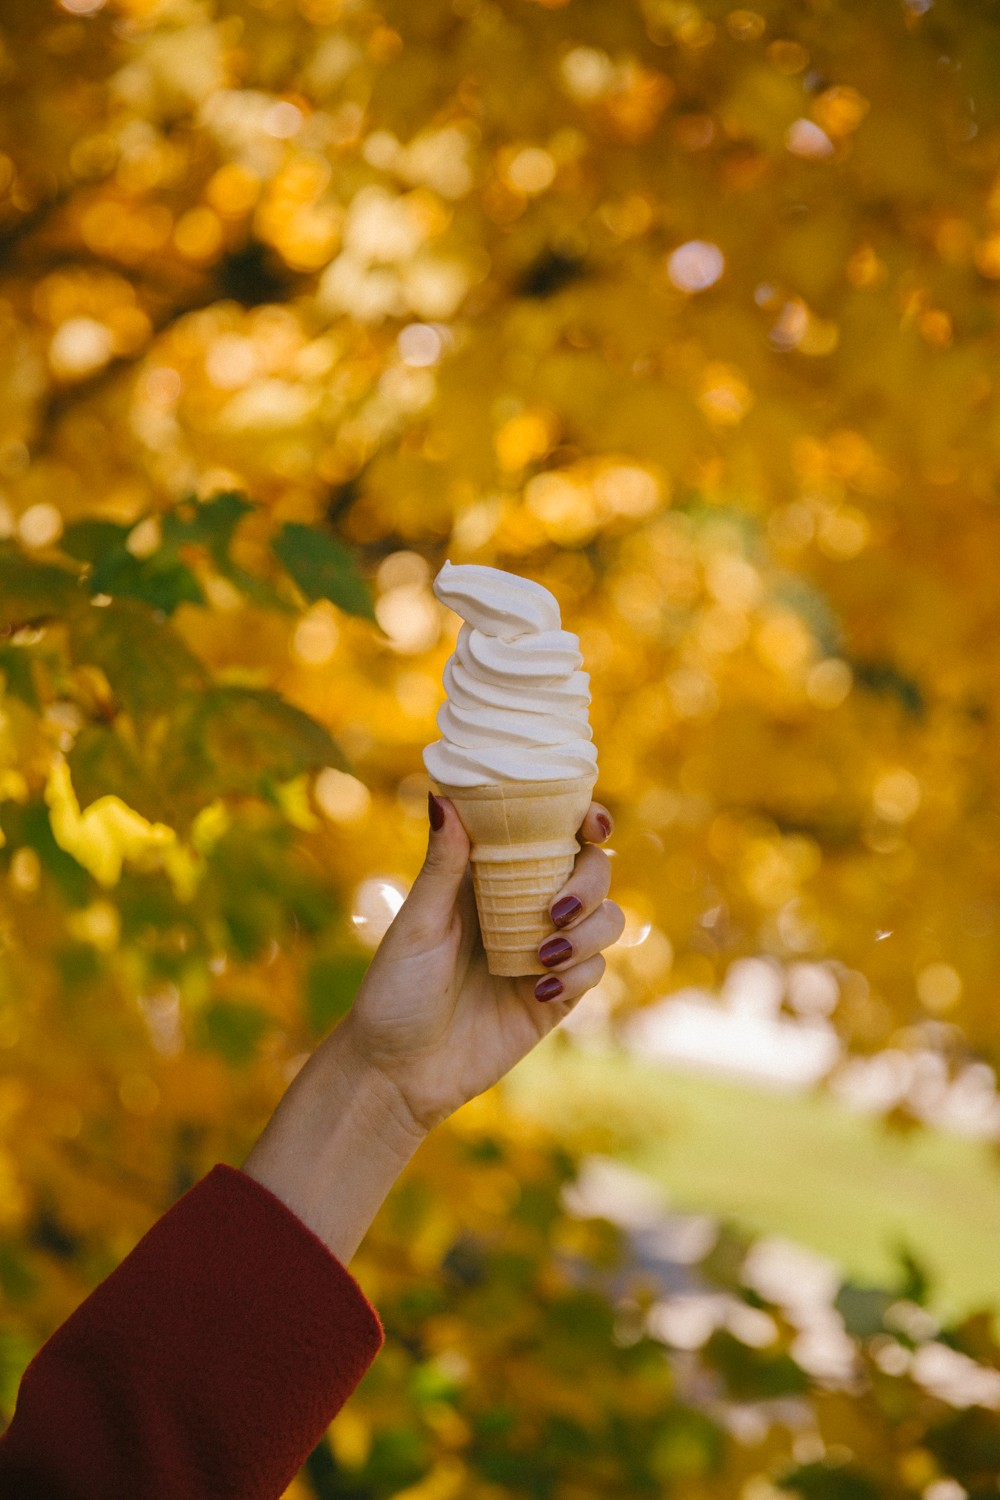 Ice-Cream in Autumn